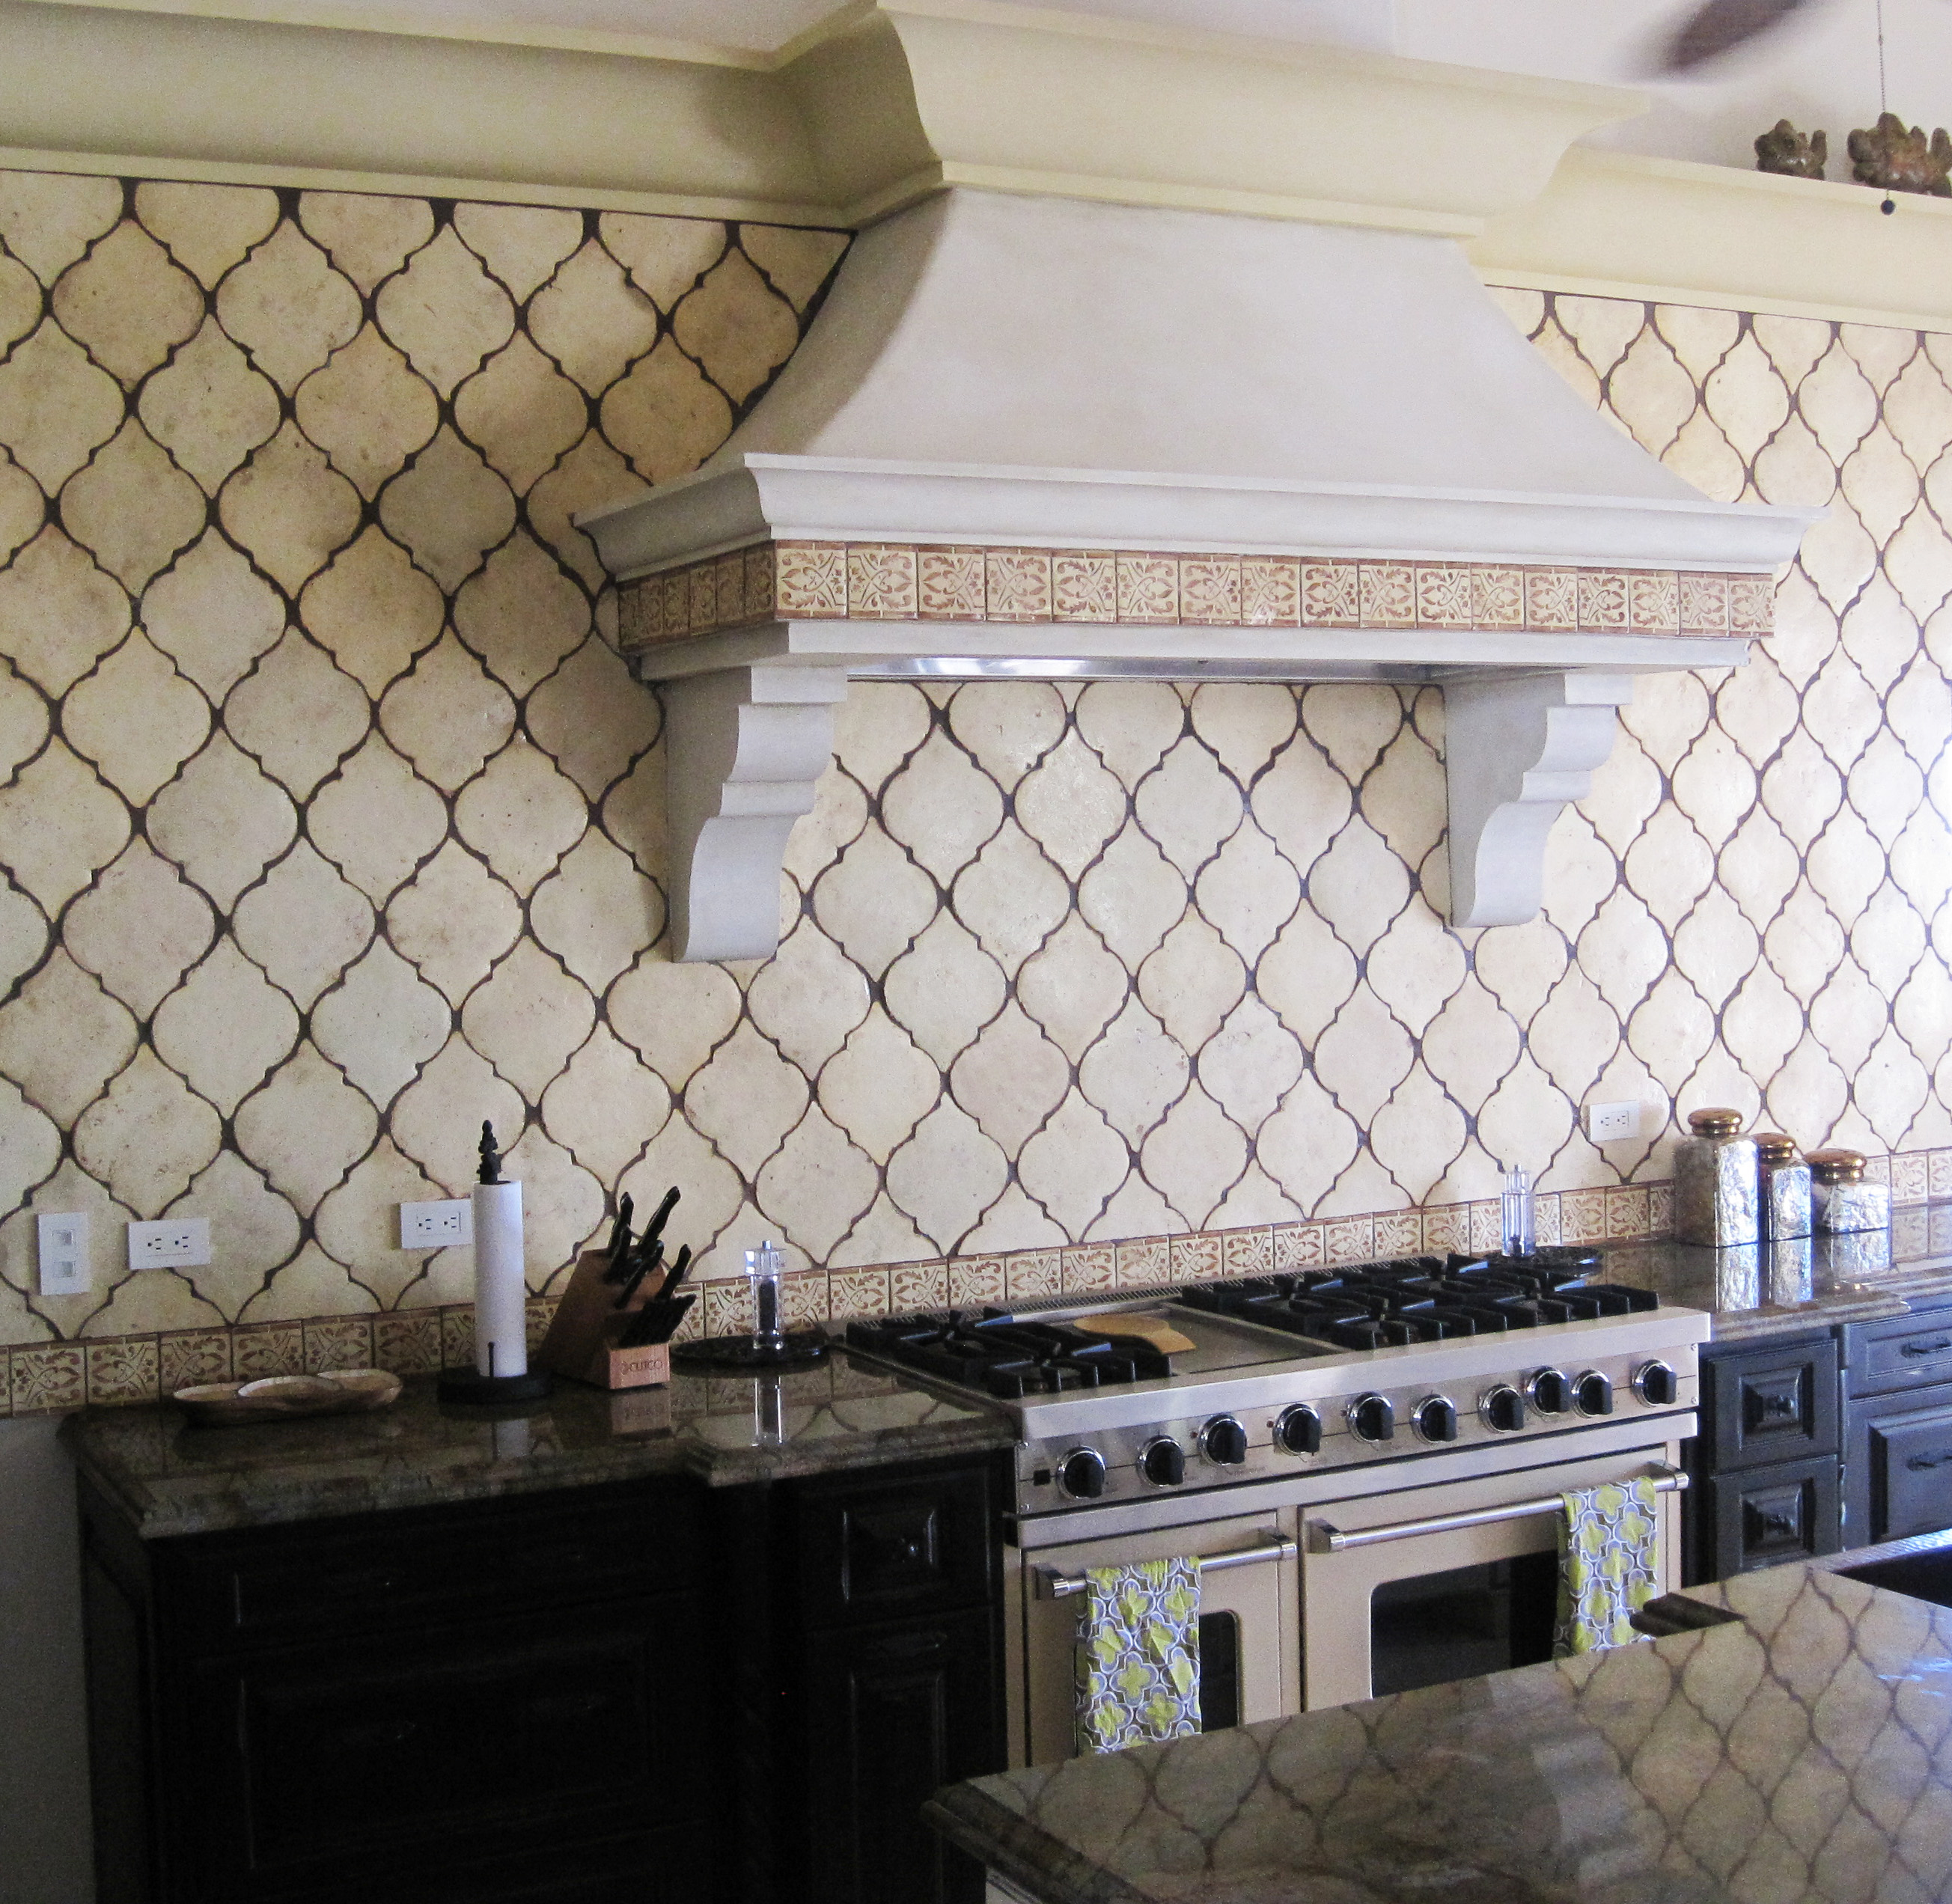 Kitchen Wall Tile Backsplash: Kitchen Studio Of Naples, Inc